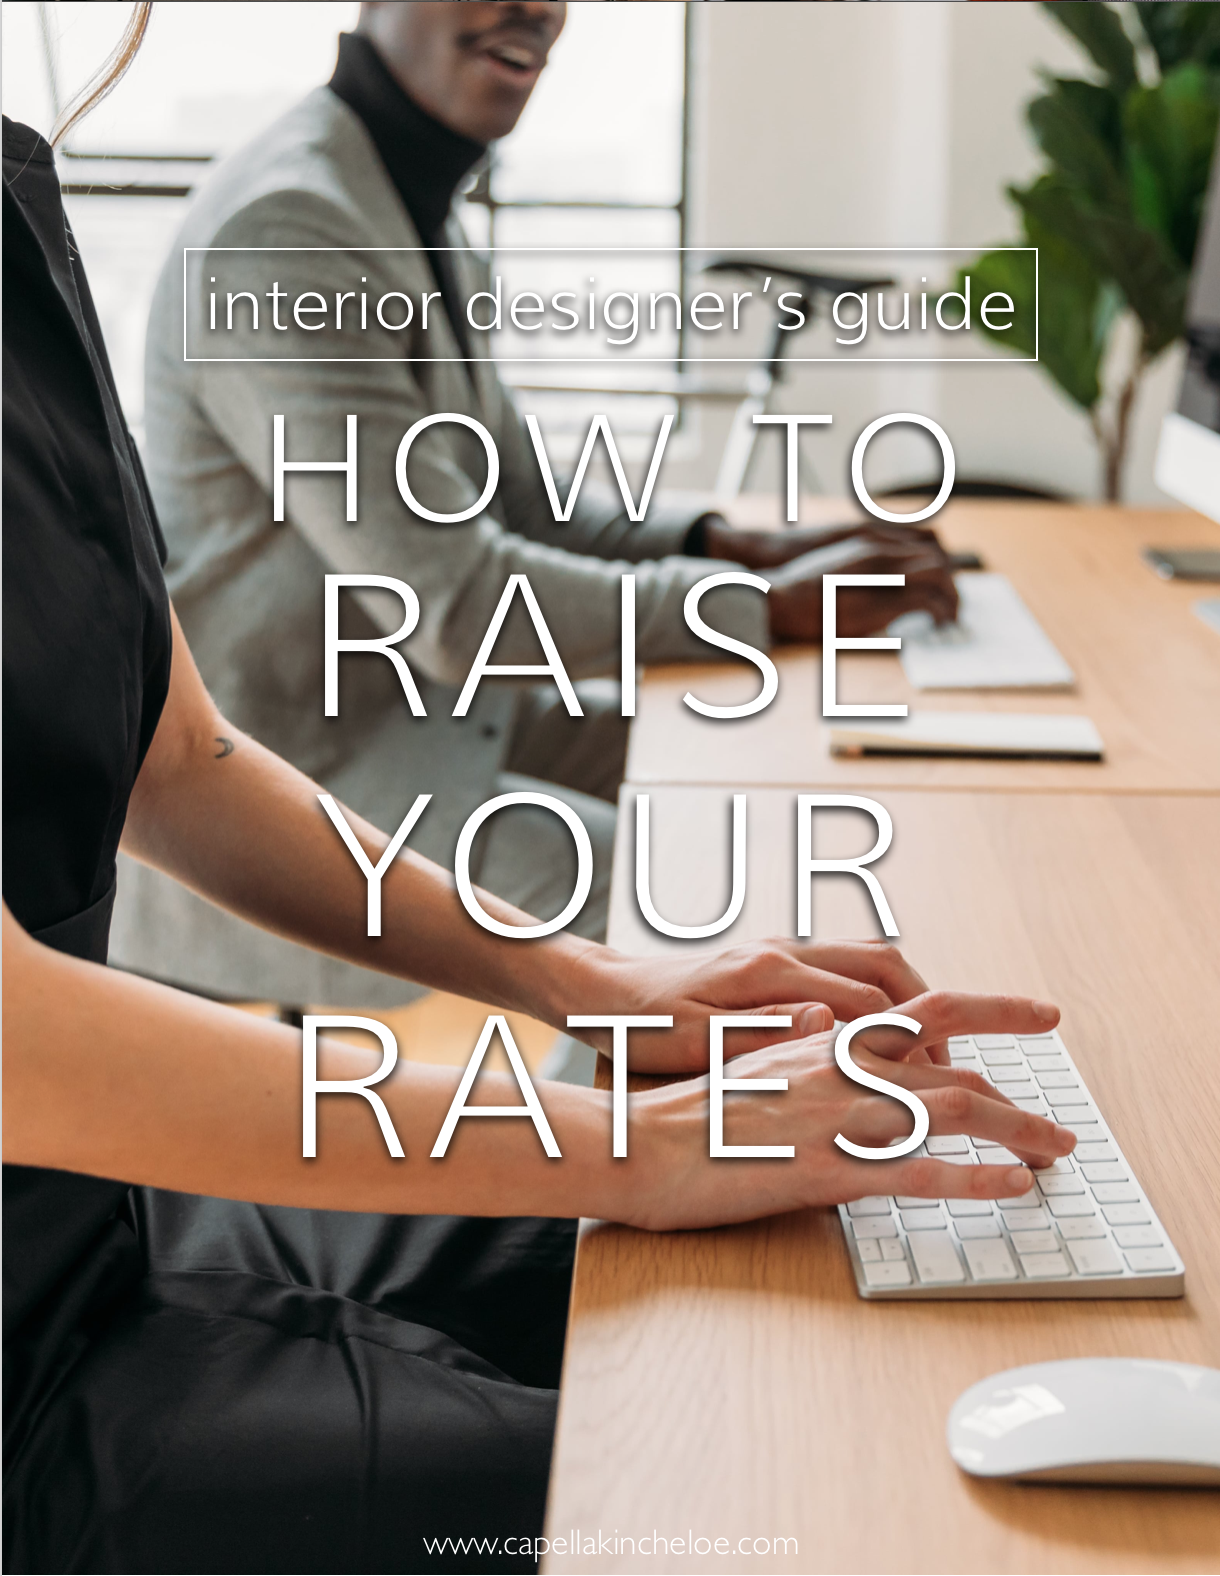 Sometimes raising your rates can be a little scary. Who knows how your clients are going to take it? With this handy guide you'll be able to charge more with ease.